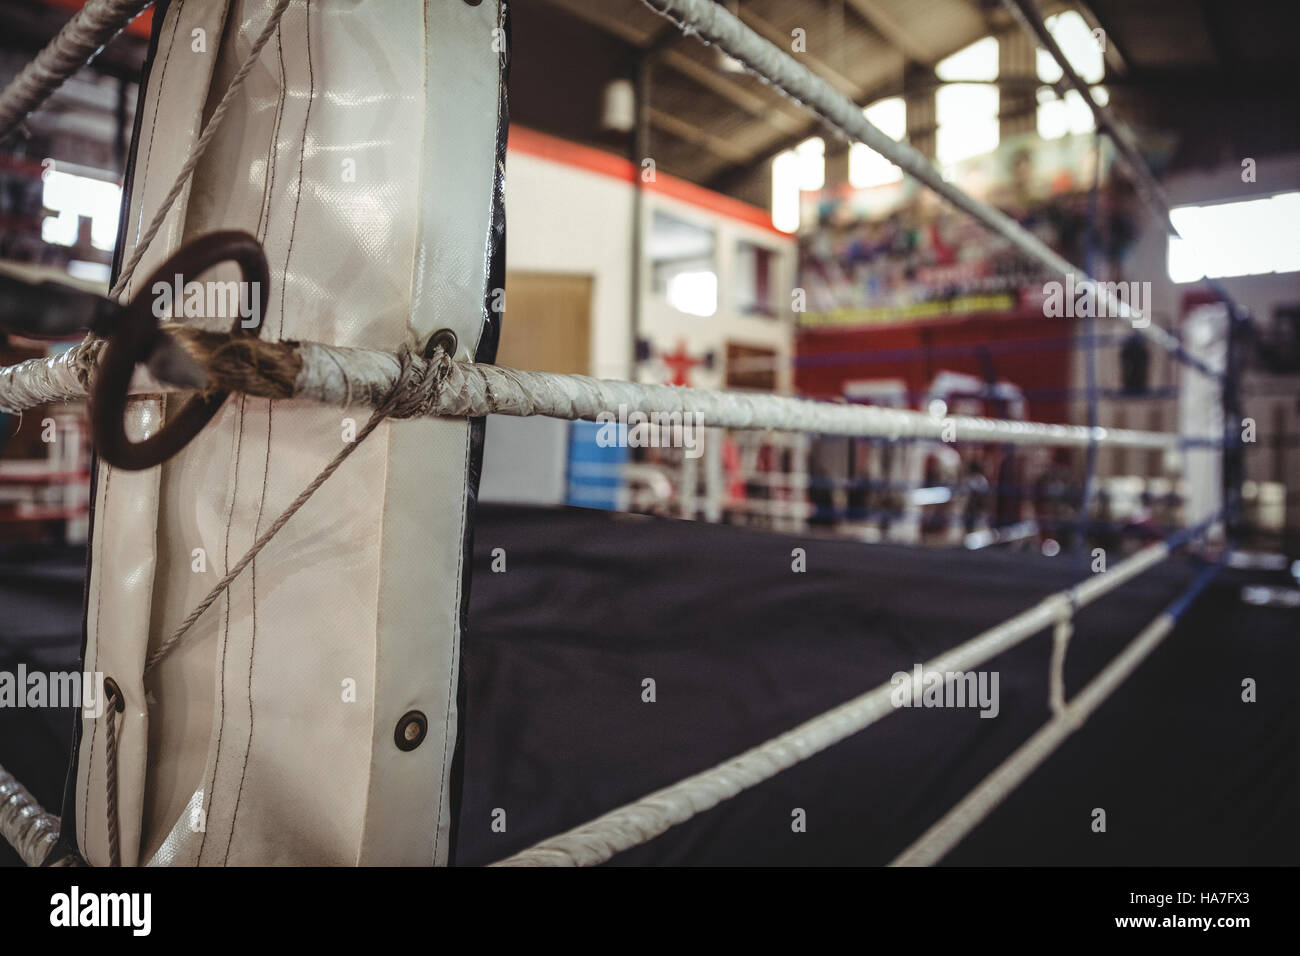 Boxing ring in fitness studio - Stock Image